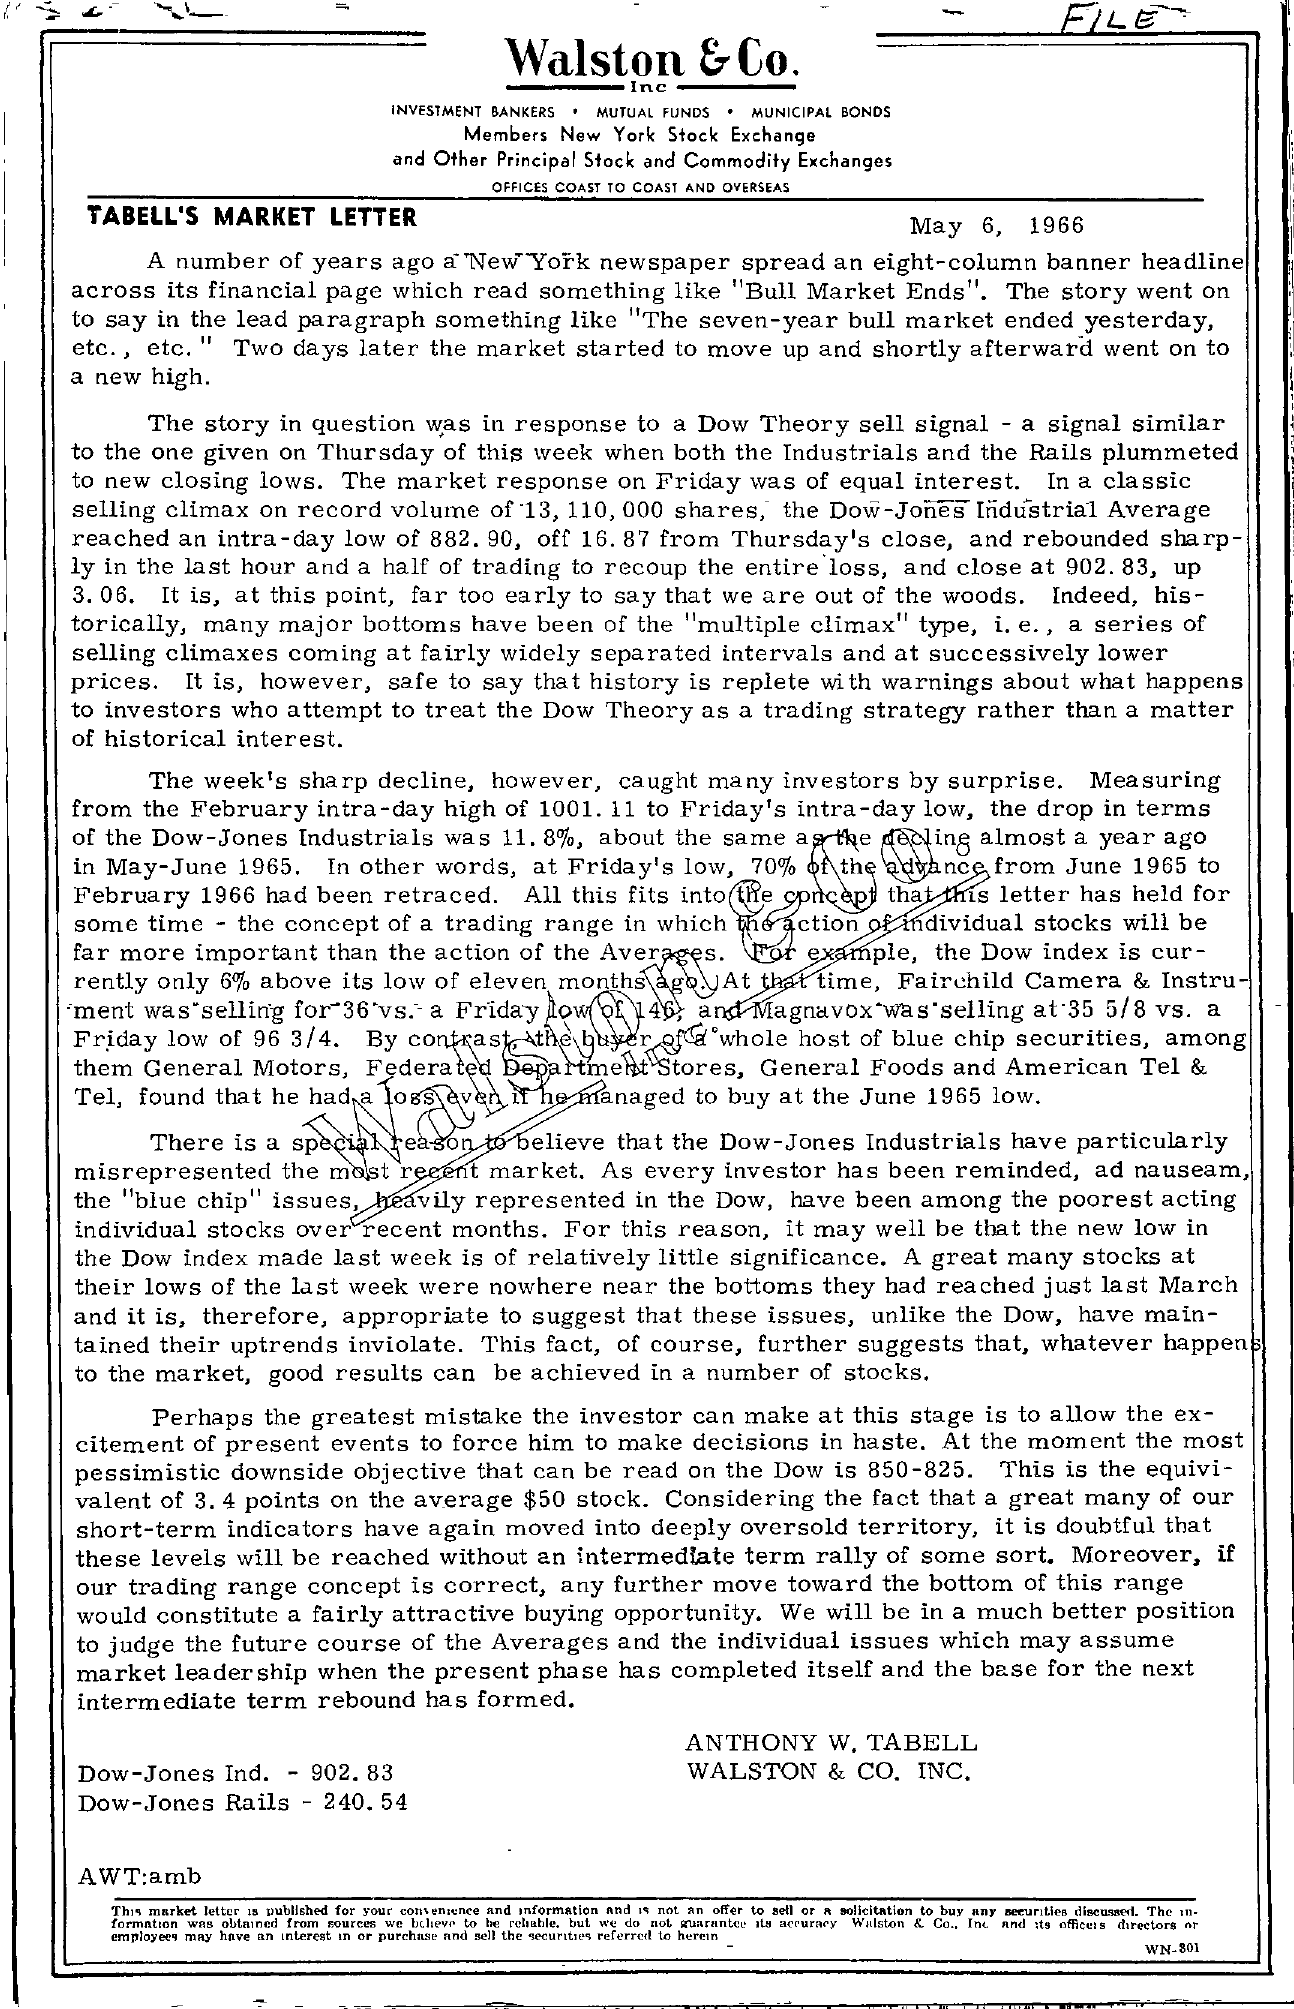 Tabell's Market Letter - May 06, 1966